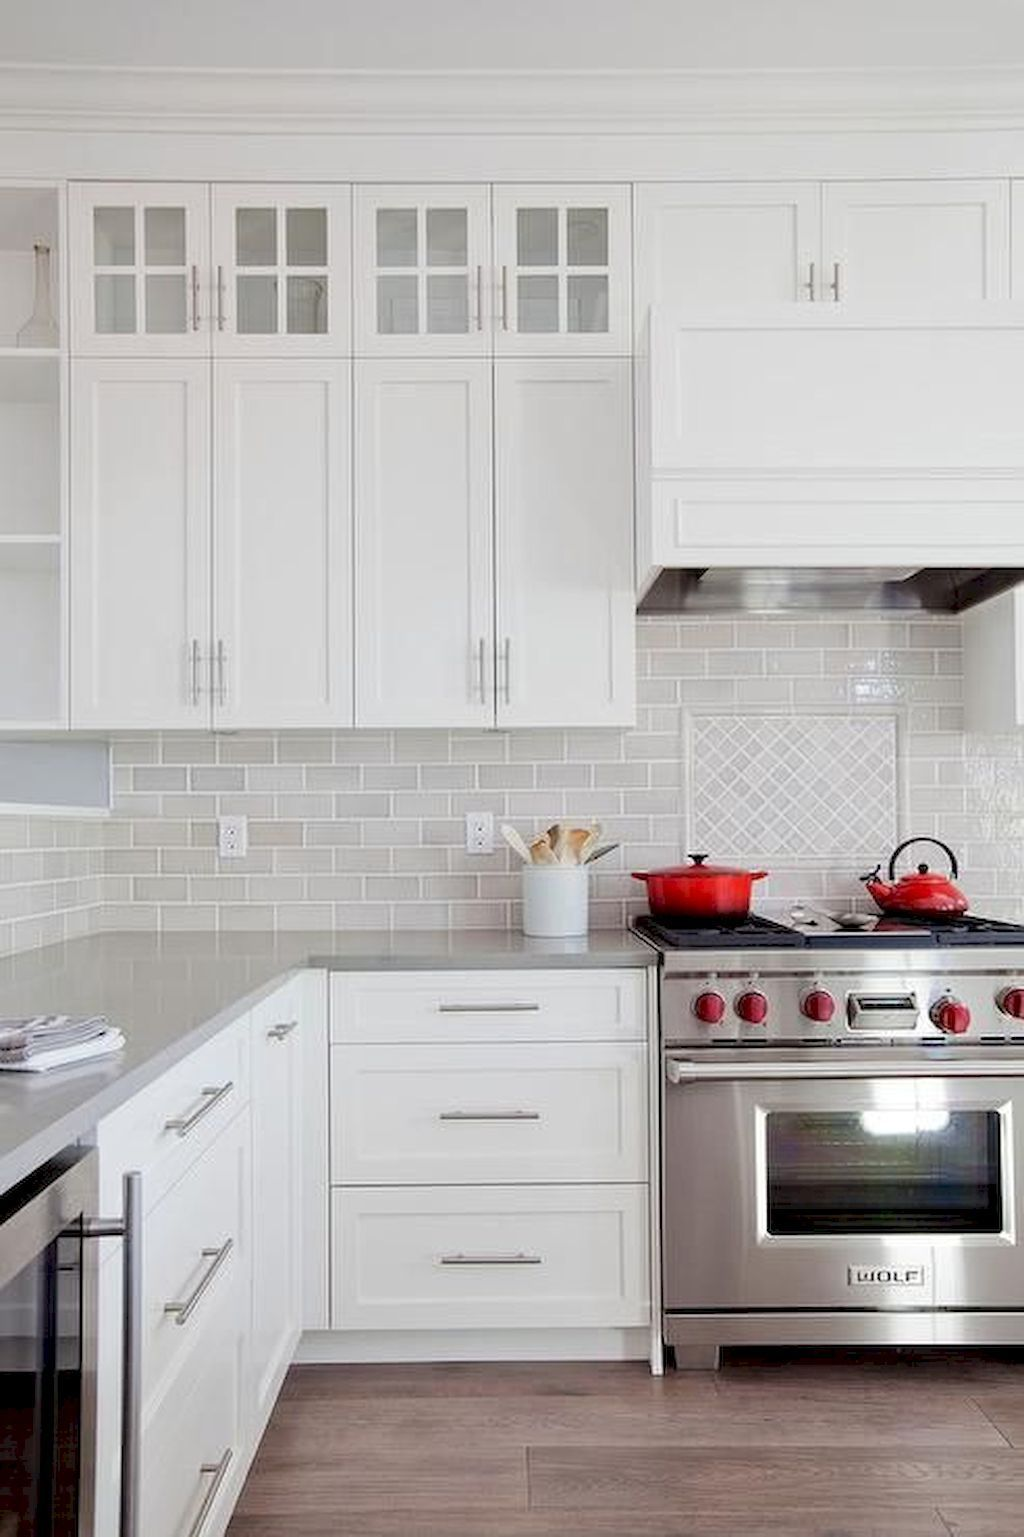 Awesome 115 Beautiful White Kitchen Cabinet Design Ideas https ...